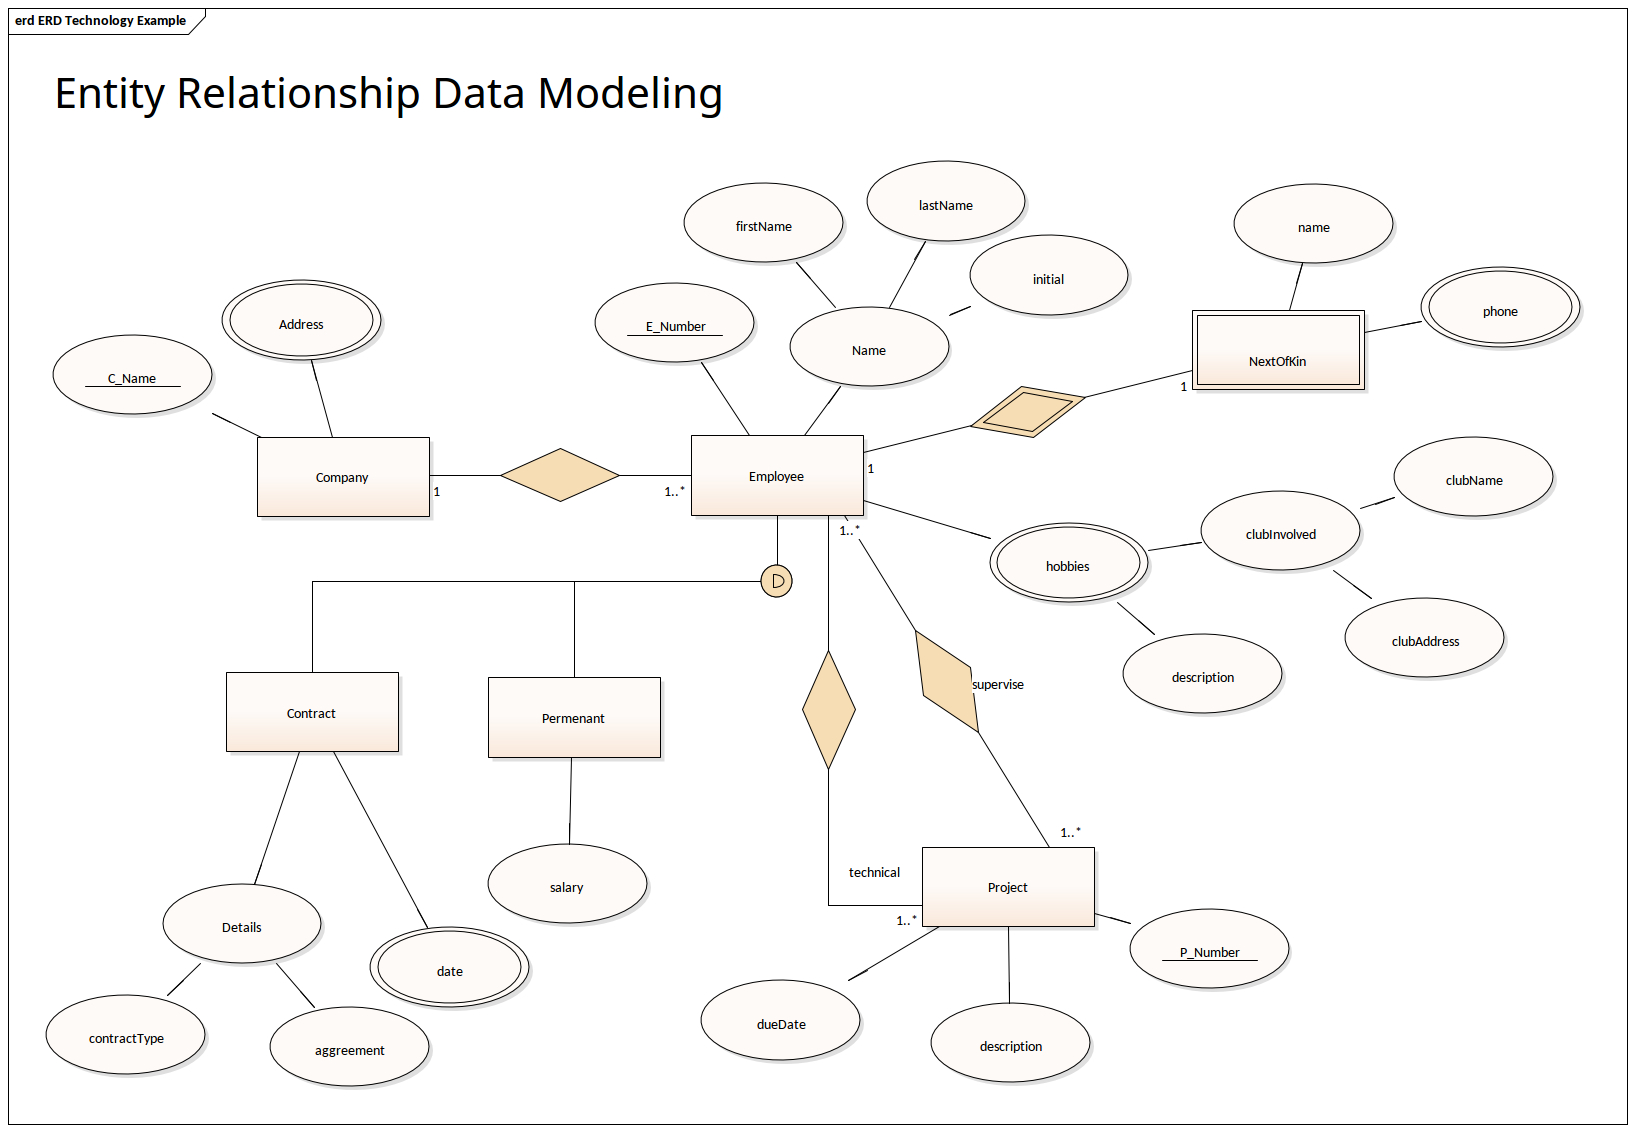 Entity Relationship Data Modeling | Enterprise Architect throughout What Is Entity Relationship Model